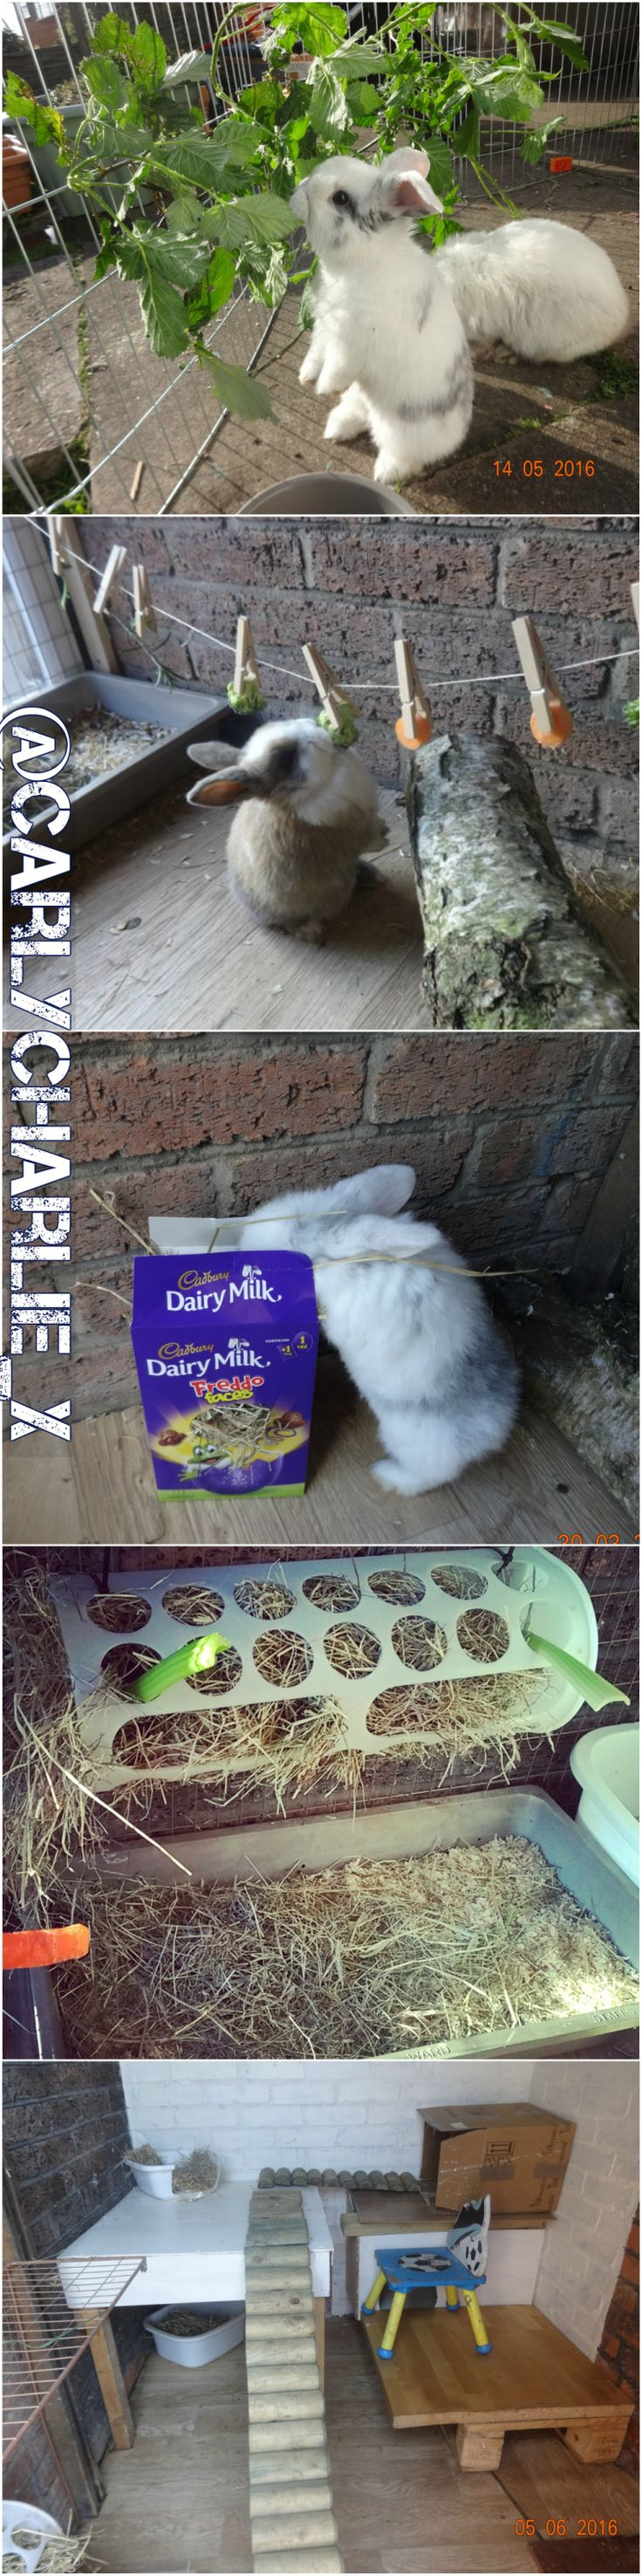 Here are my Mini Lop Bunnies and how I keep them occupied. Ensuring your bunnies are occupied and have a lot of stimulation ensures their wellbeing ensuring that your beloved bun is free from unwanted behaviours. New ideas added regularly. Bunnies June 2016.jpg